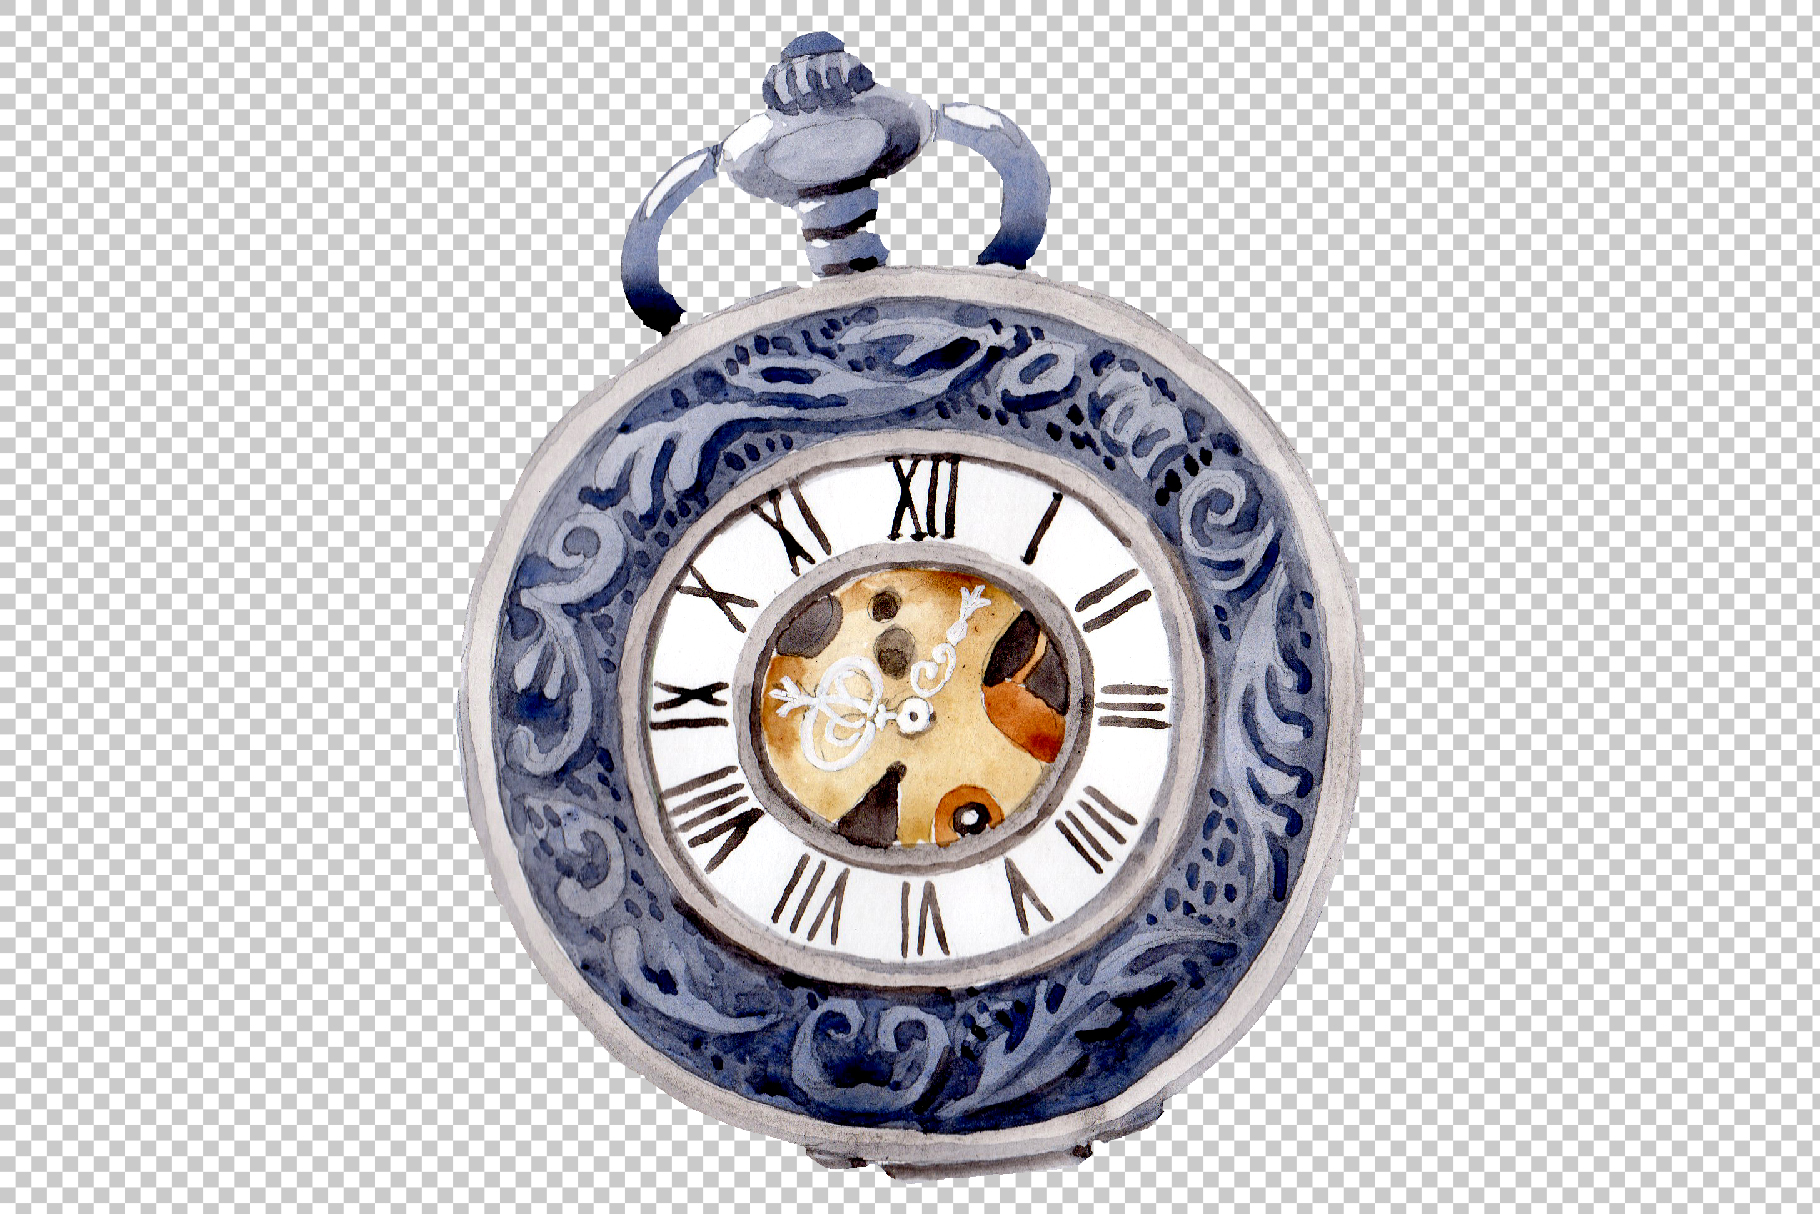 Clock old watercolor png example image 3